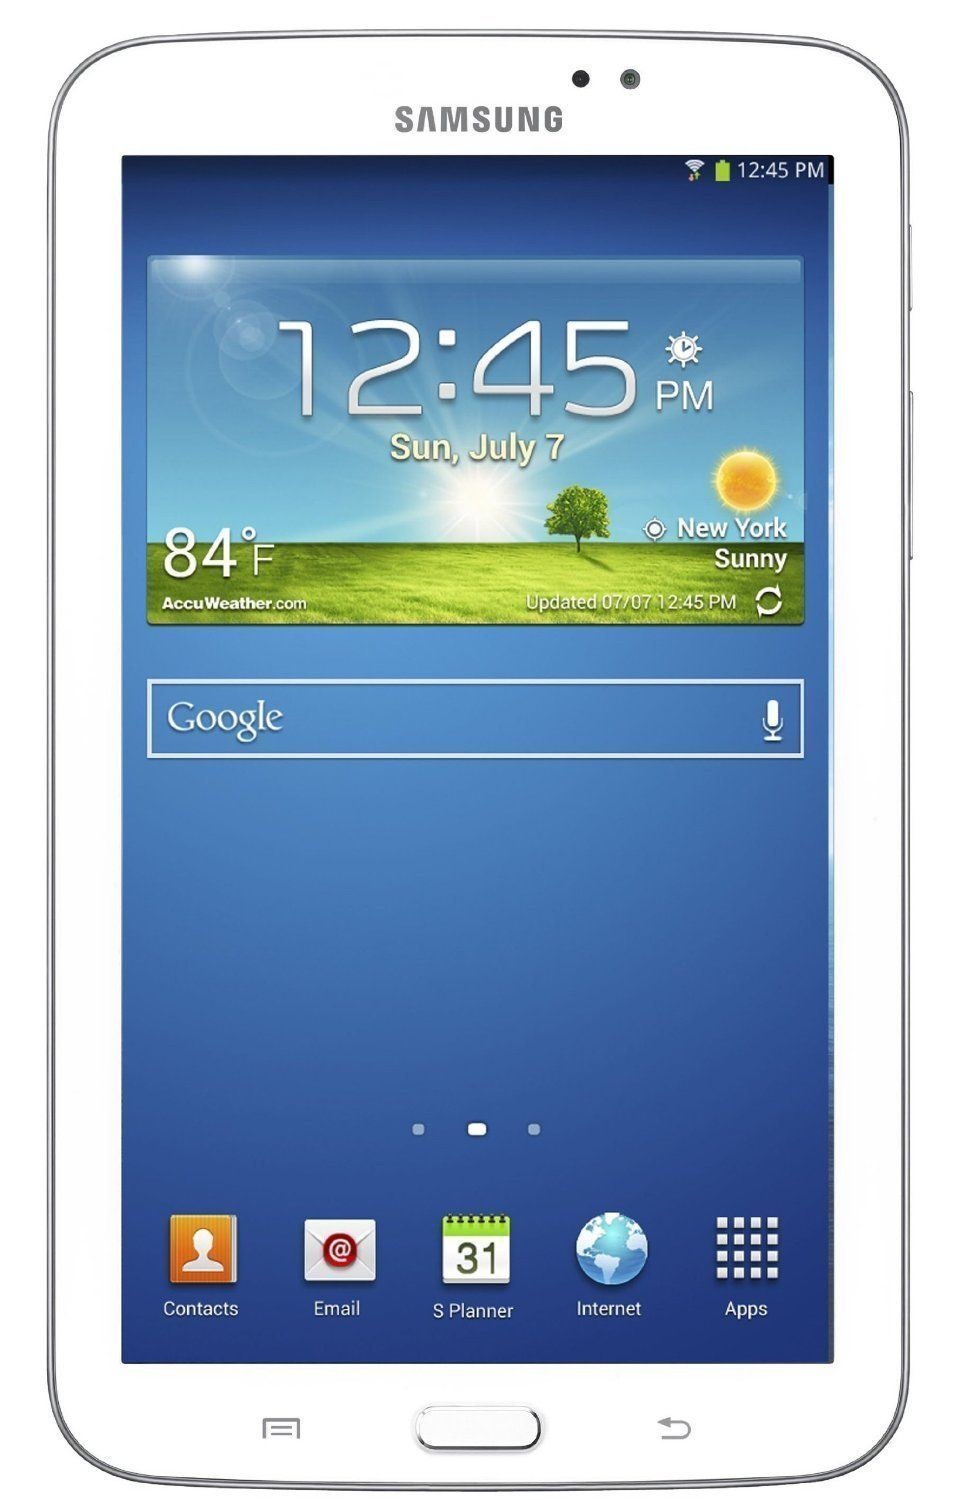 Samsung Galaxy Tab 3 Sm T210 8gb 7 120ghz 1gb Android 41 Wi Fi Grand 2 Jellybean Qualcomm Snapdragon Tablet White Price 14950 Free Shipping